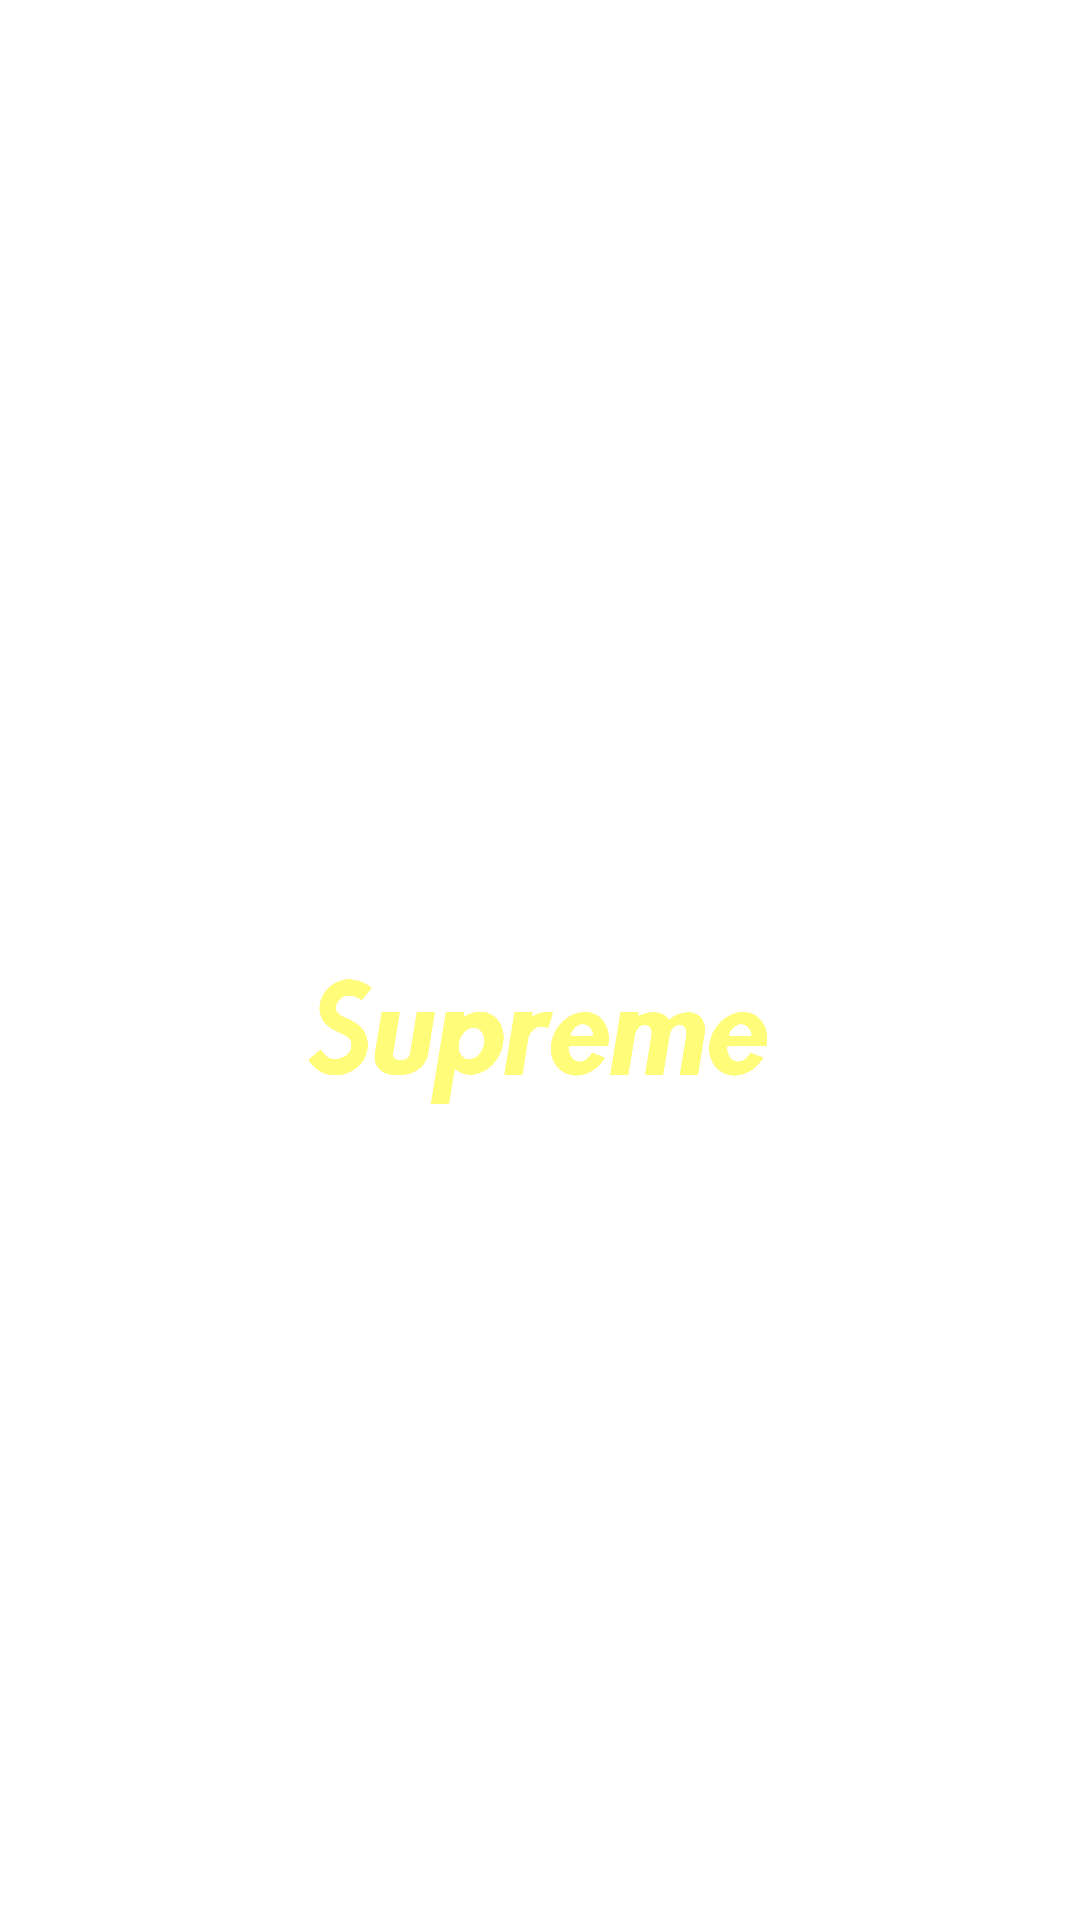 supreme12 - 23 Supreme HQ Smartphone Wallpaper Collection